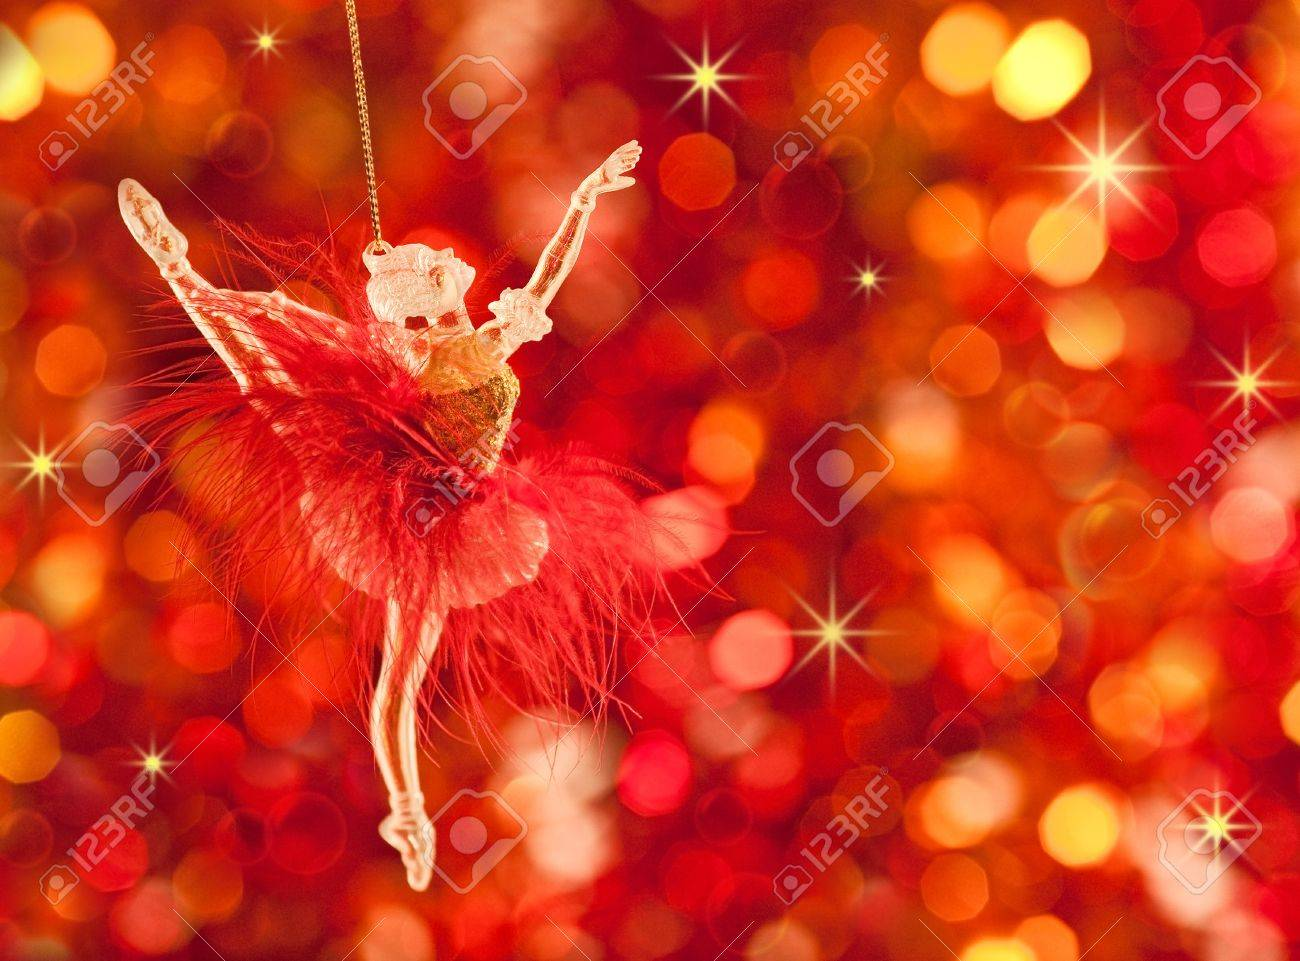 Christmas tree decoration on lights red background Stock Photo - 10264359